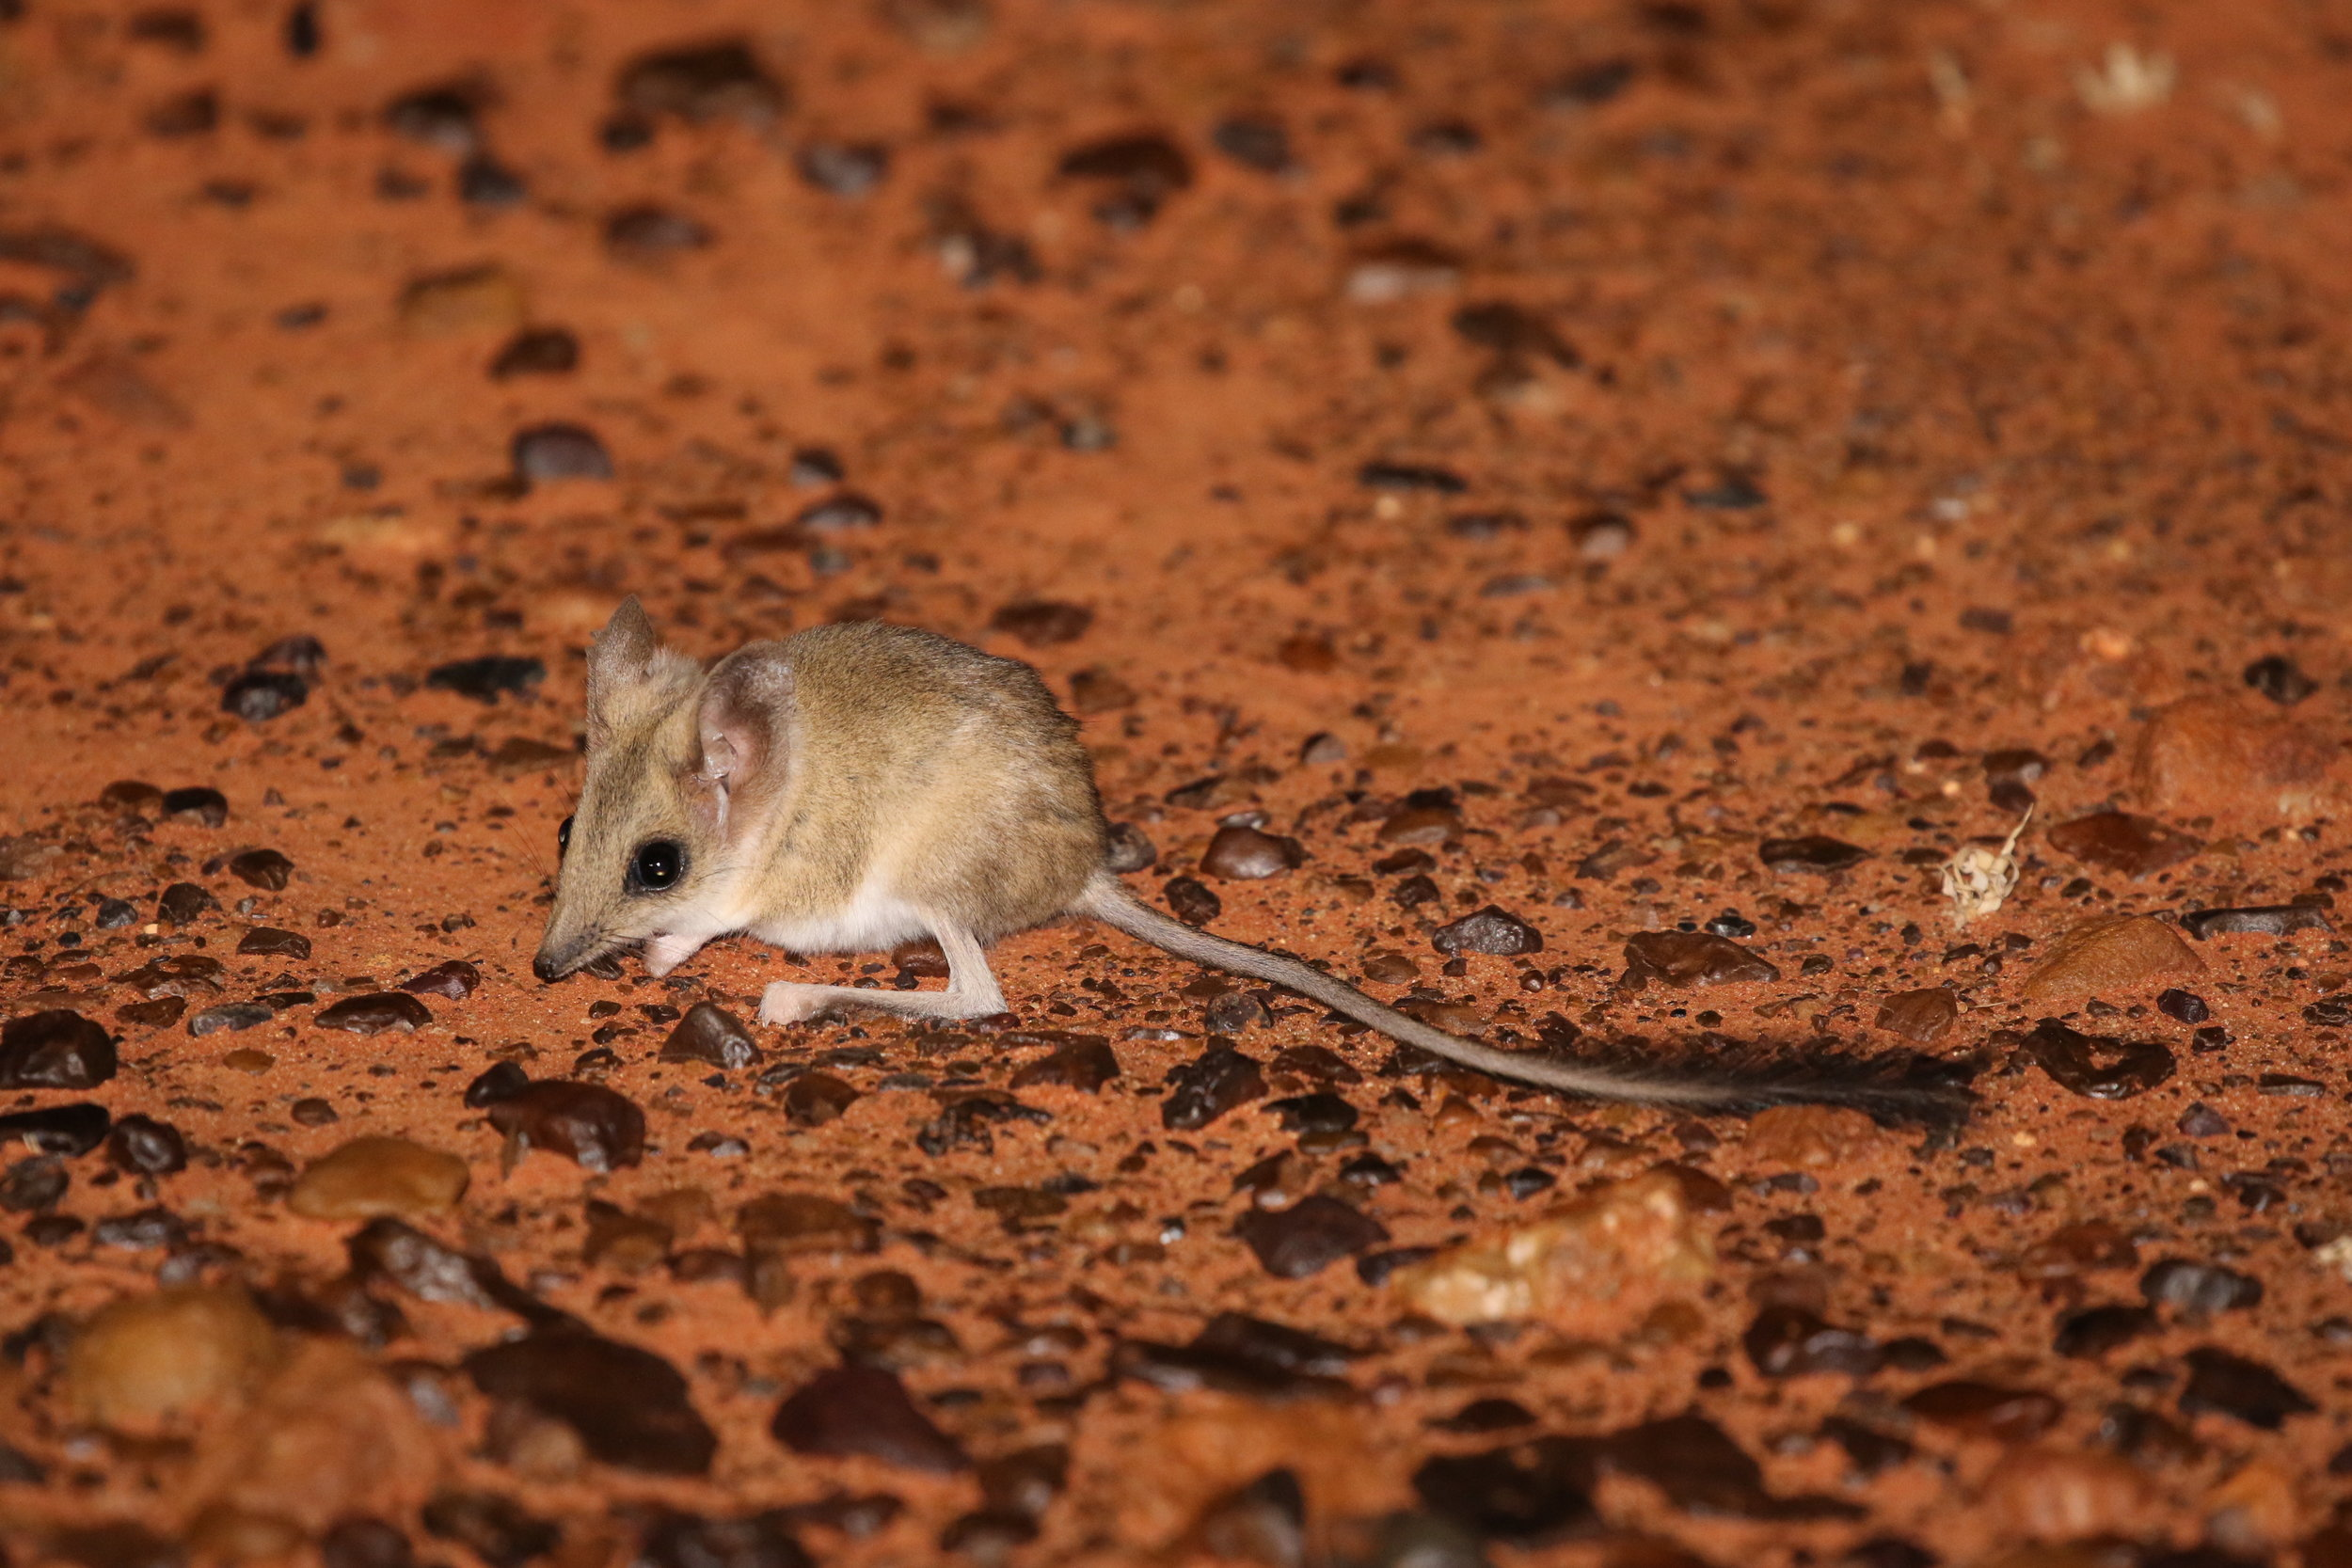 Where to find Wildlife in the Red Centre - A resource for the wildlife traveller about the journeys, sites and species of Central Australia